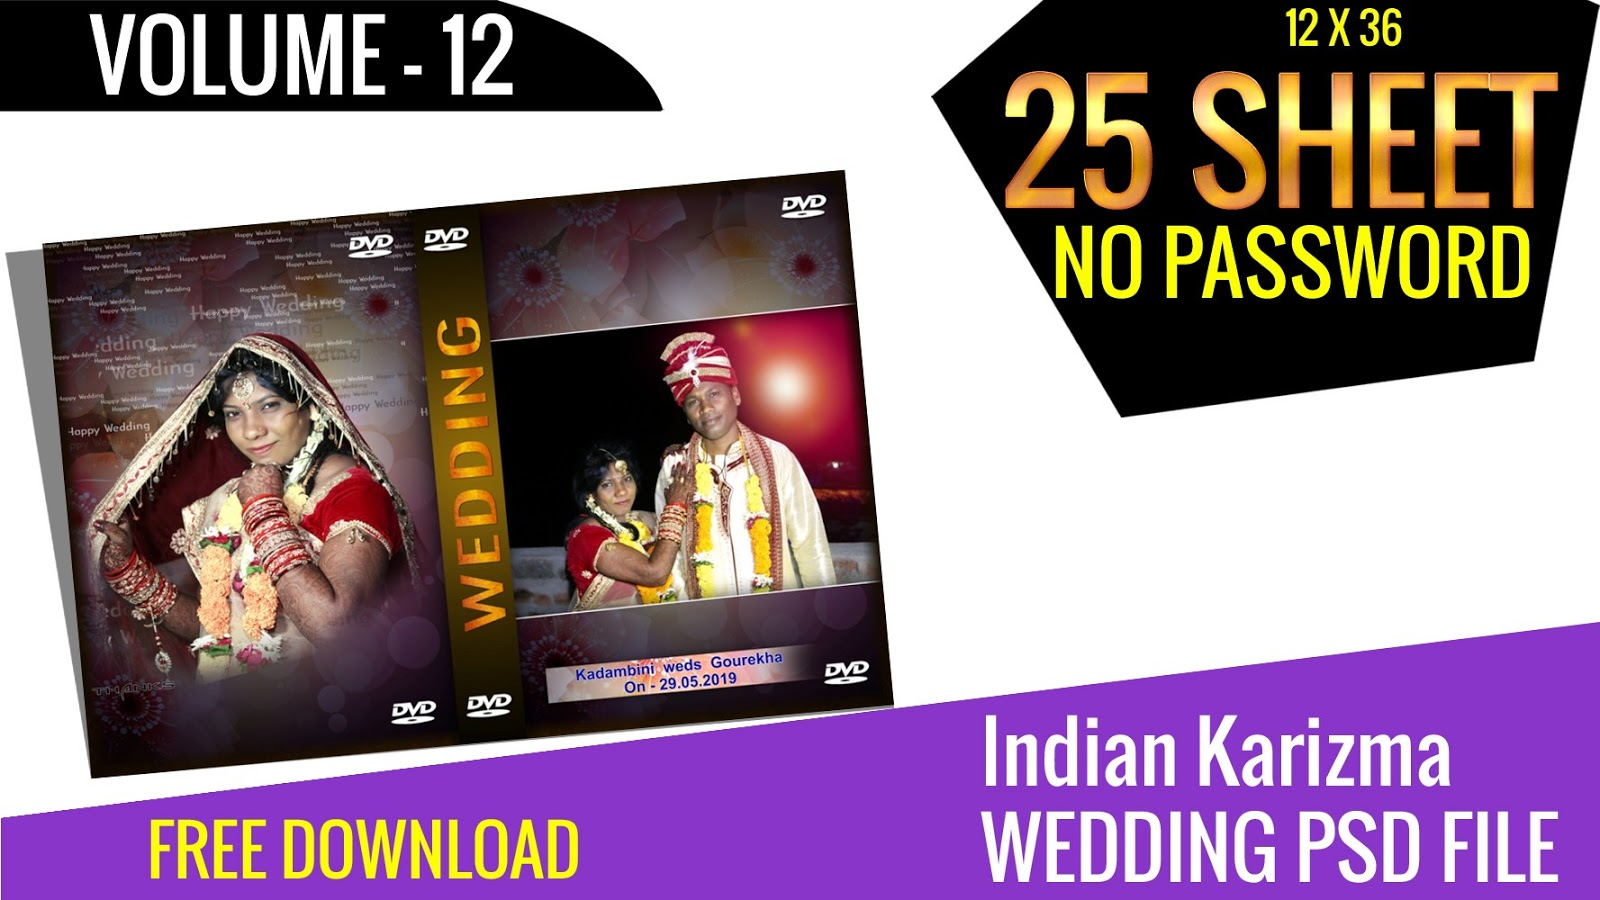 Karizma Album 12X36 PSD Templates Free Download [Vol-12]